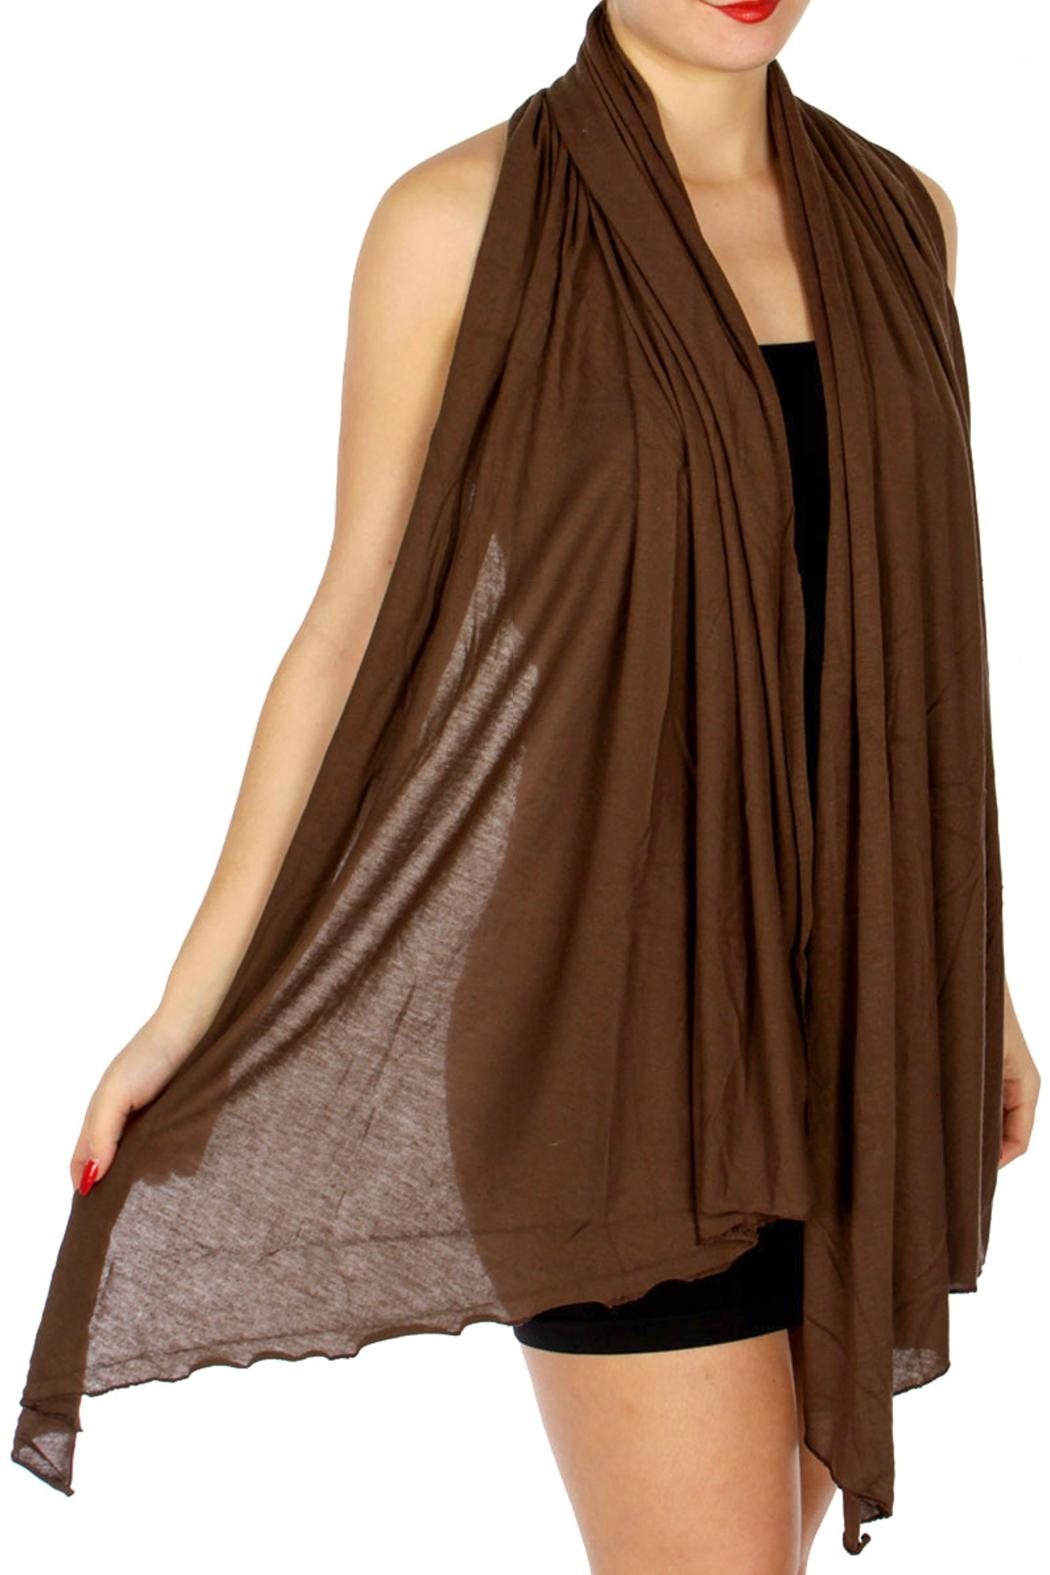 TIGERLILY Brown Diagonal Scarf - Front Full Image